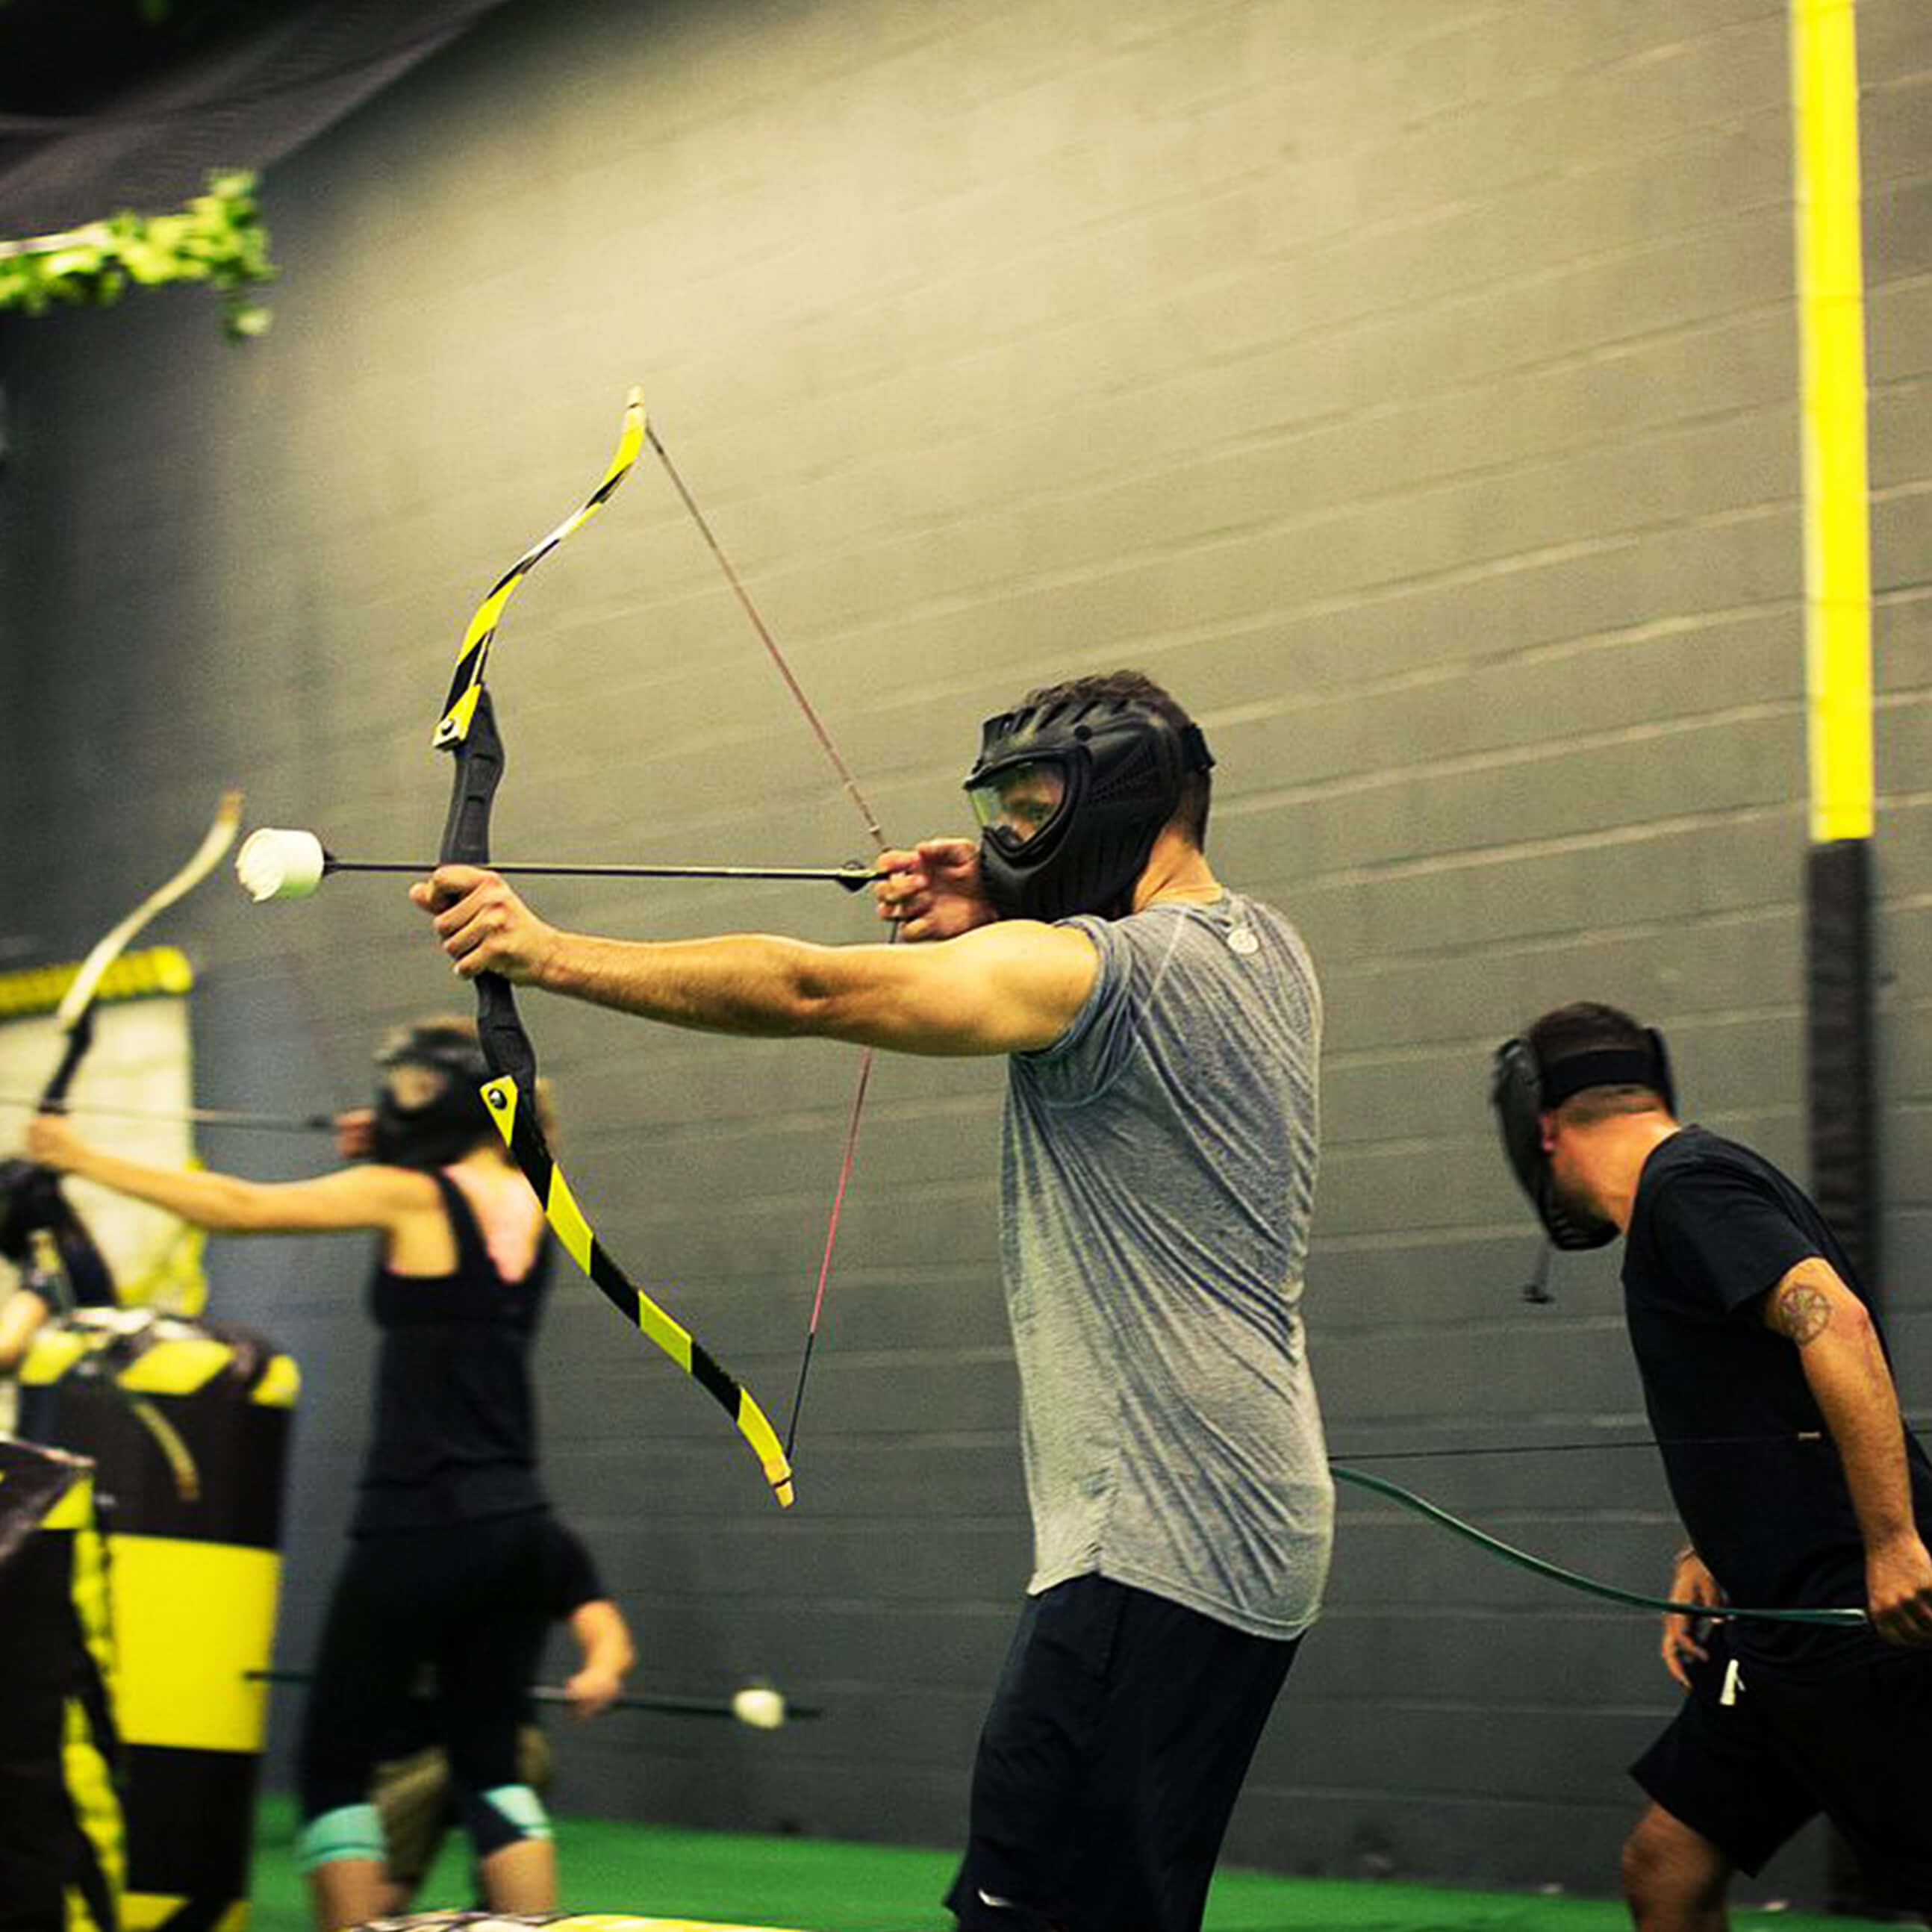 Archery Tag at the Legacy 925